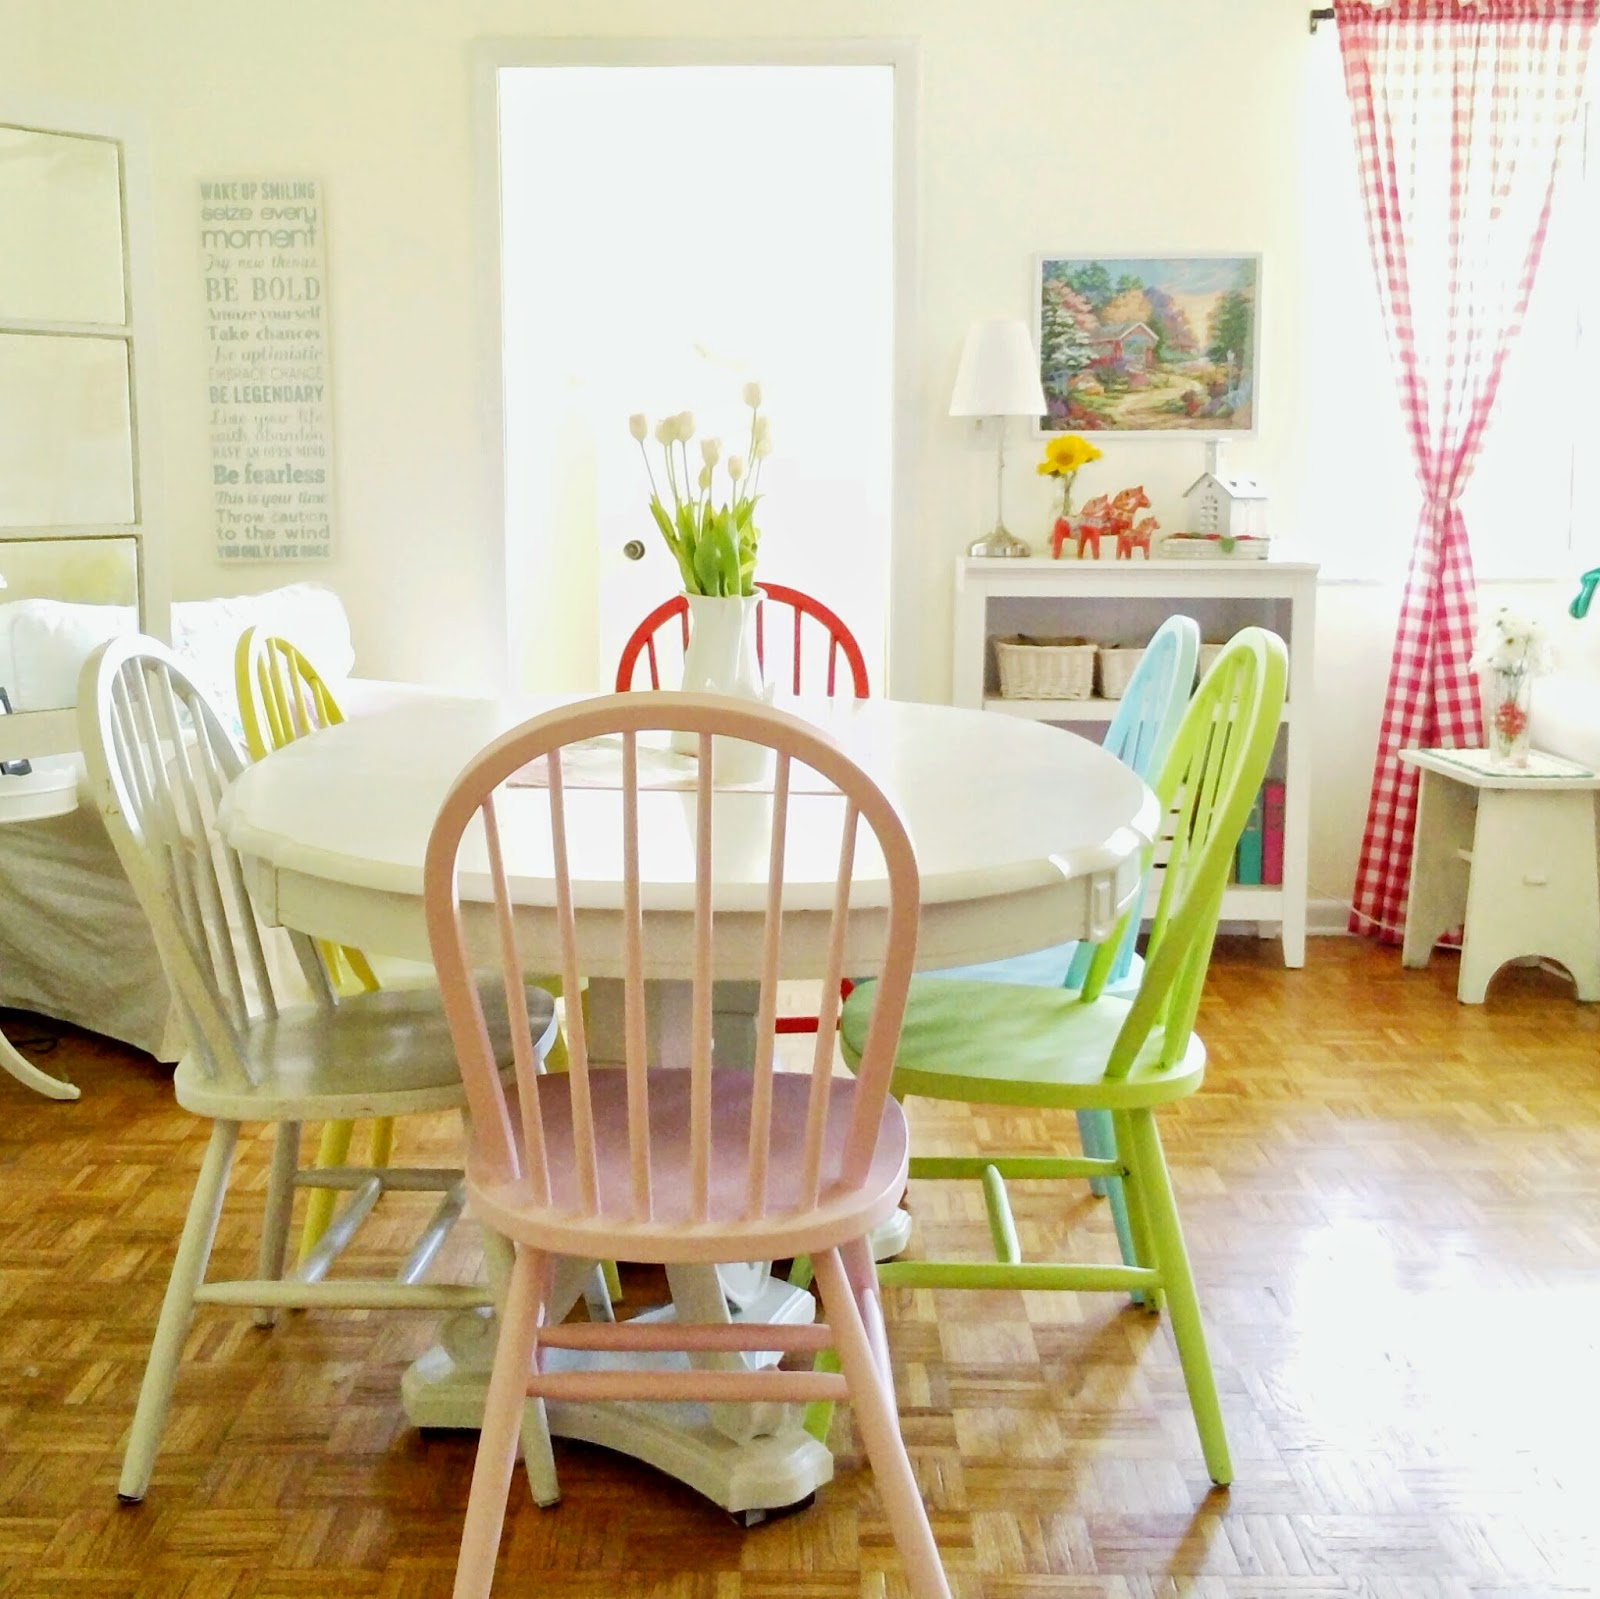 Peachy Hopscotch Lane Colorful Dining Room Chairs Download Free Architecture Designs Embacsunscenecom